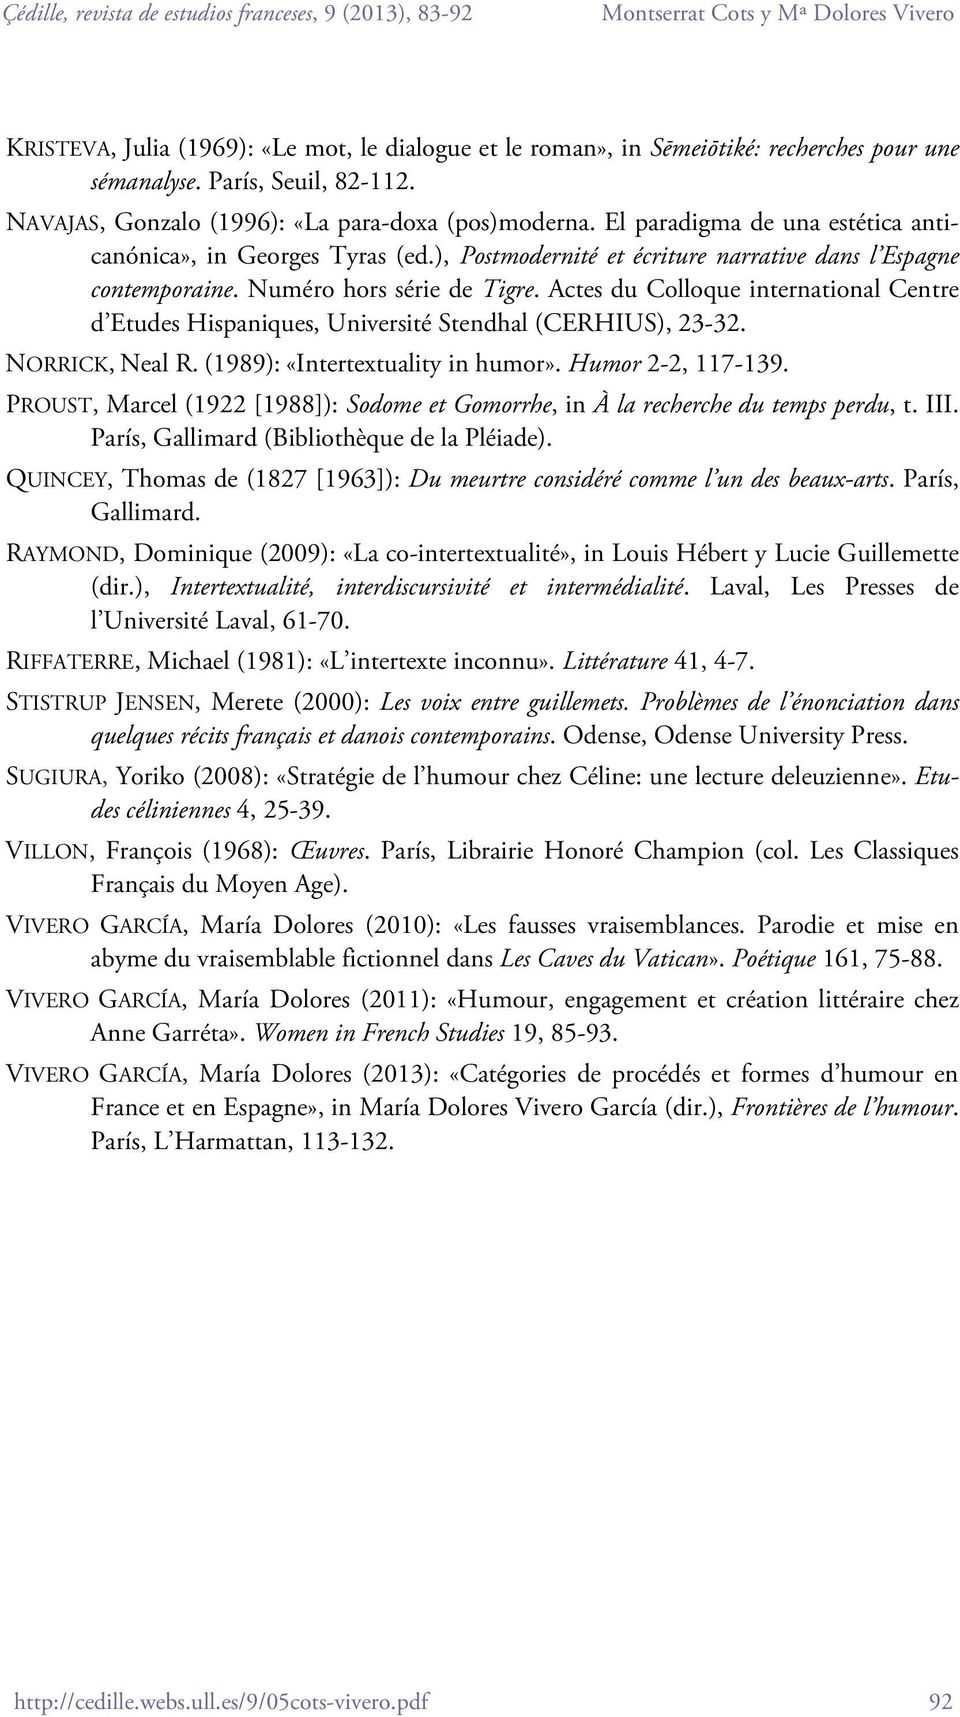 Actes du Colloque international Centre d Etudes Hispaniques, Université Stendhal (CERHIUS), 23-32. NORRICK, Neal R. (1989): «Intertextuality in humor». Humor 2-2, 117-139.